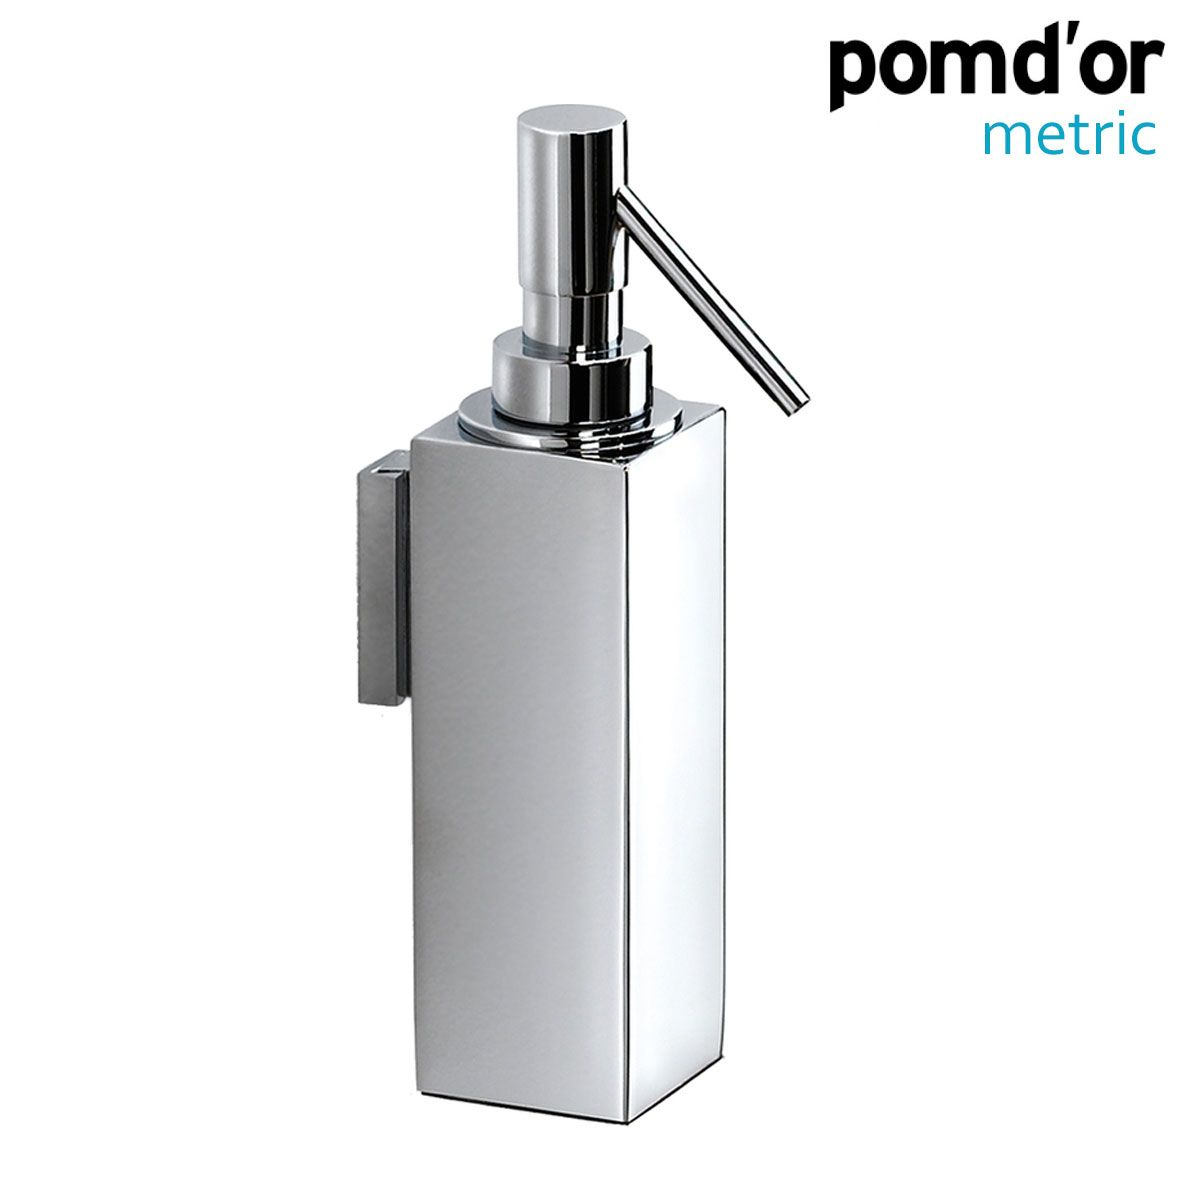 Pom D Or Metric Wall Mounted Soap Dispenser Chrome 387801